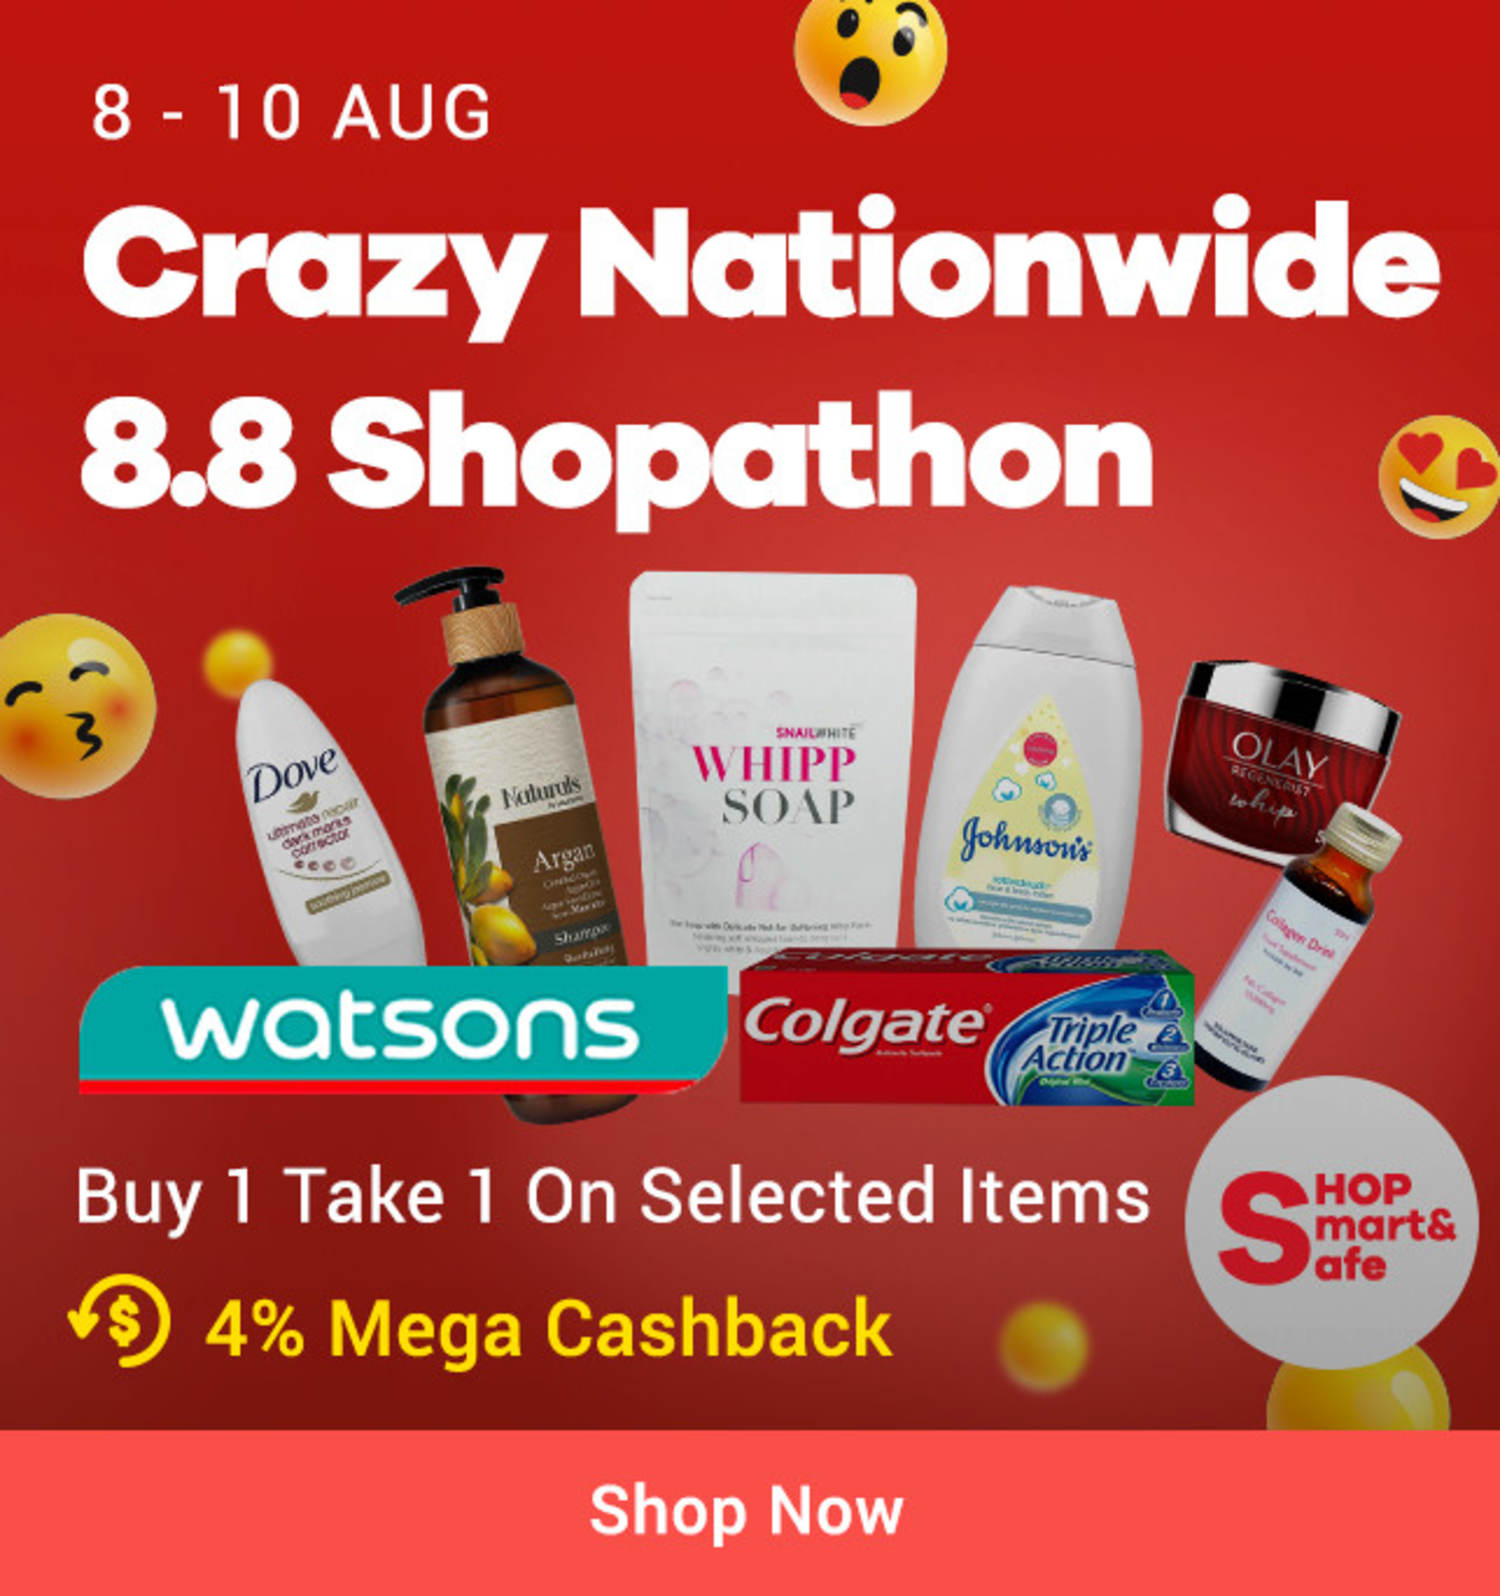 Watsons: 8.8 Crazy Nationwide Shopathon Up to 50% off